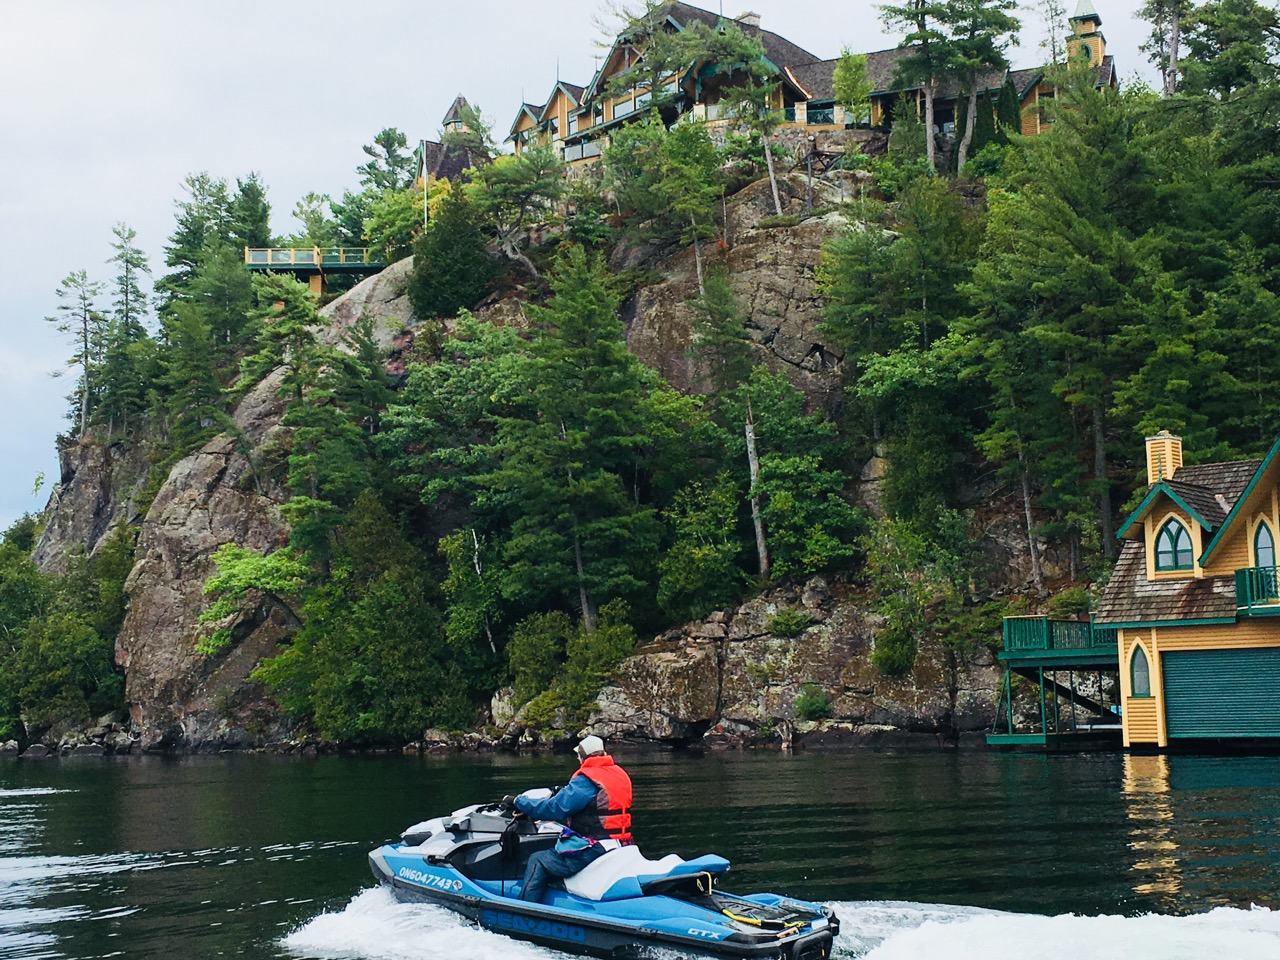 Exploring and discovering new waterways like the Muskoka Lakes result from PWC beginners tips.